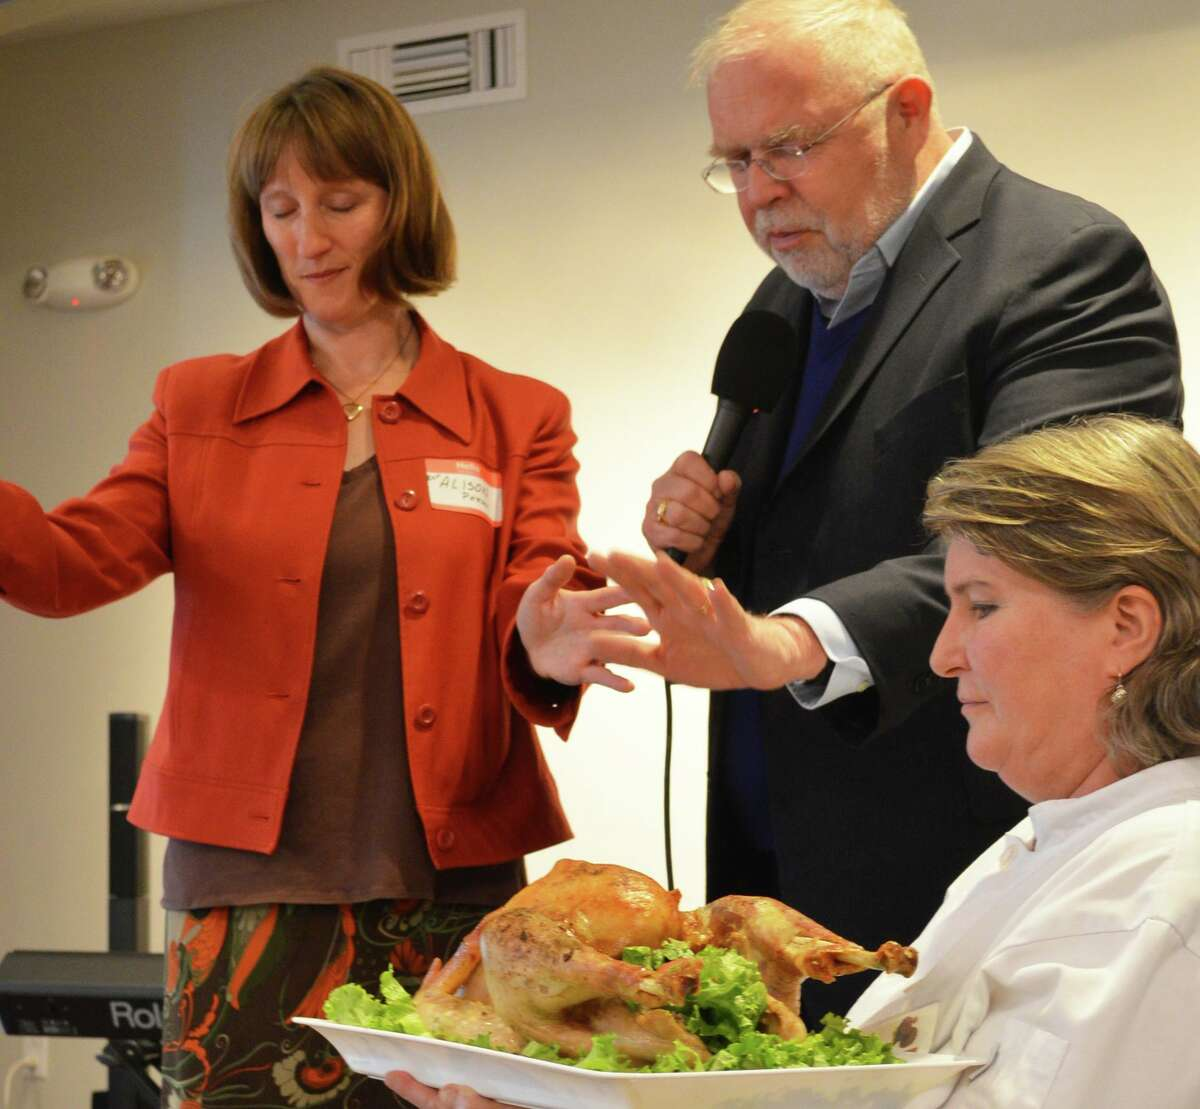 Blessing of the first bird at the Thanksgiving community feast, held by kitchen manager Paula Mikesh, was made by the Revs. Alison Patton of Saugatuck Congregational Church and John Morehouse of the Unitarian Church.